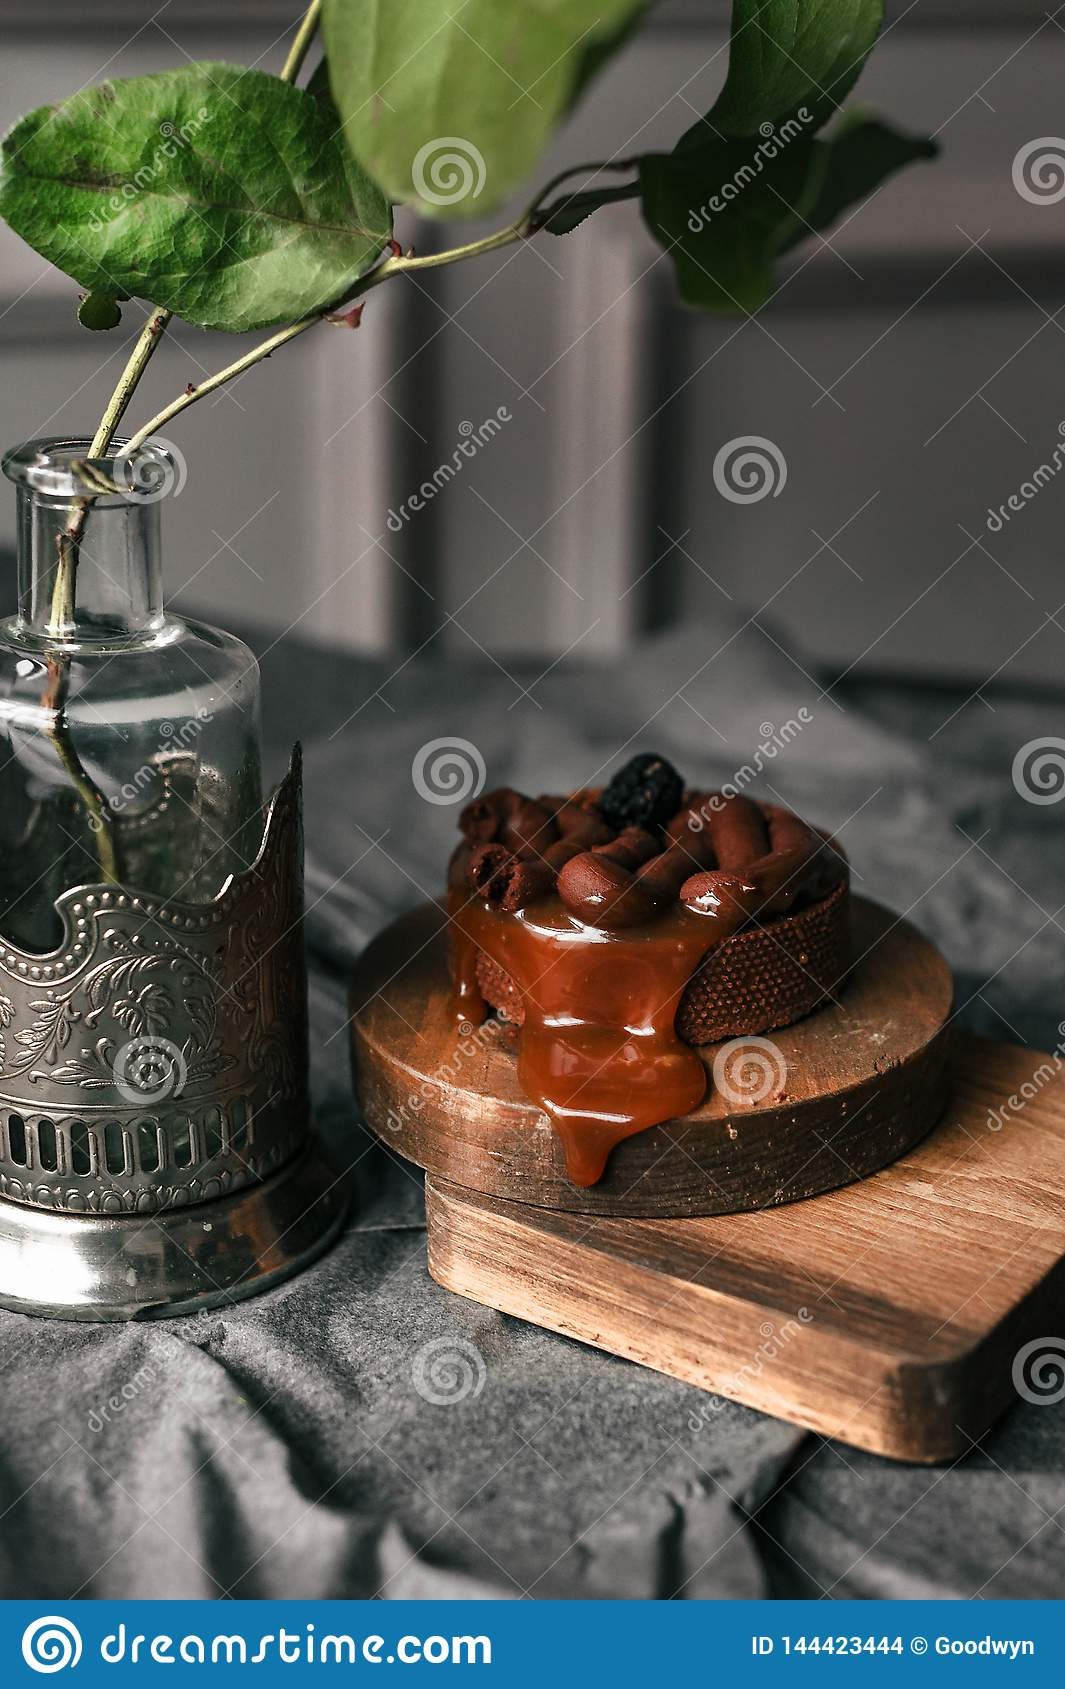 Cake with caramel and chocolate on a wooden stand